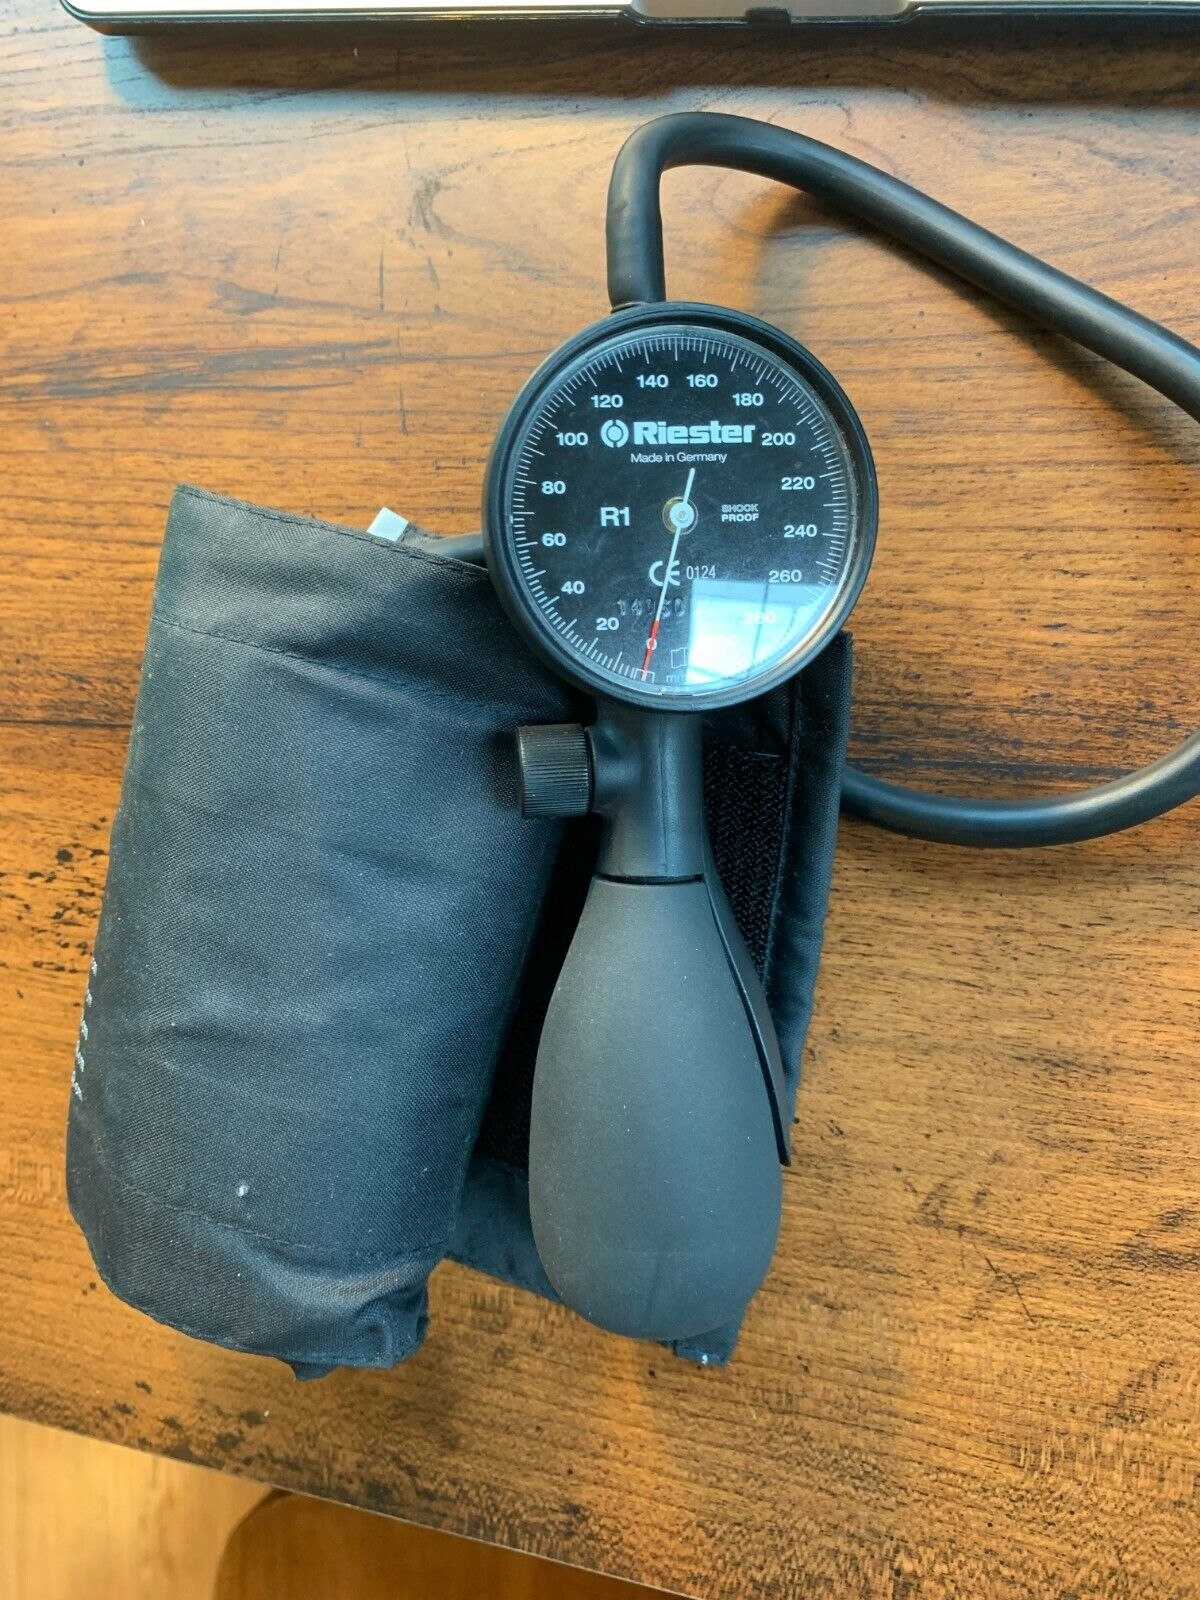 Riester R1 Shock-Proof Sphygmomanometer Blood Pressure Cuff